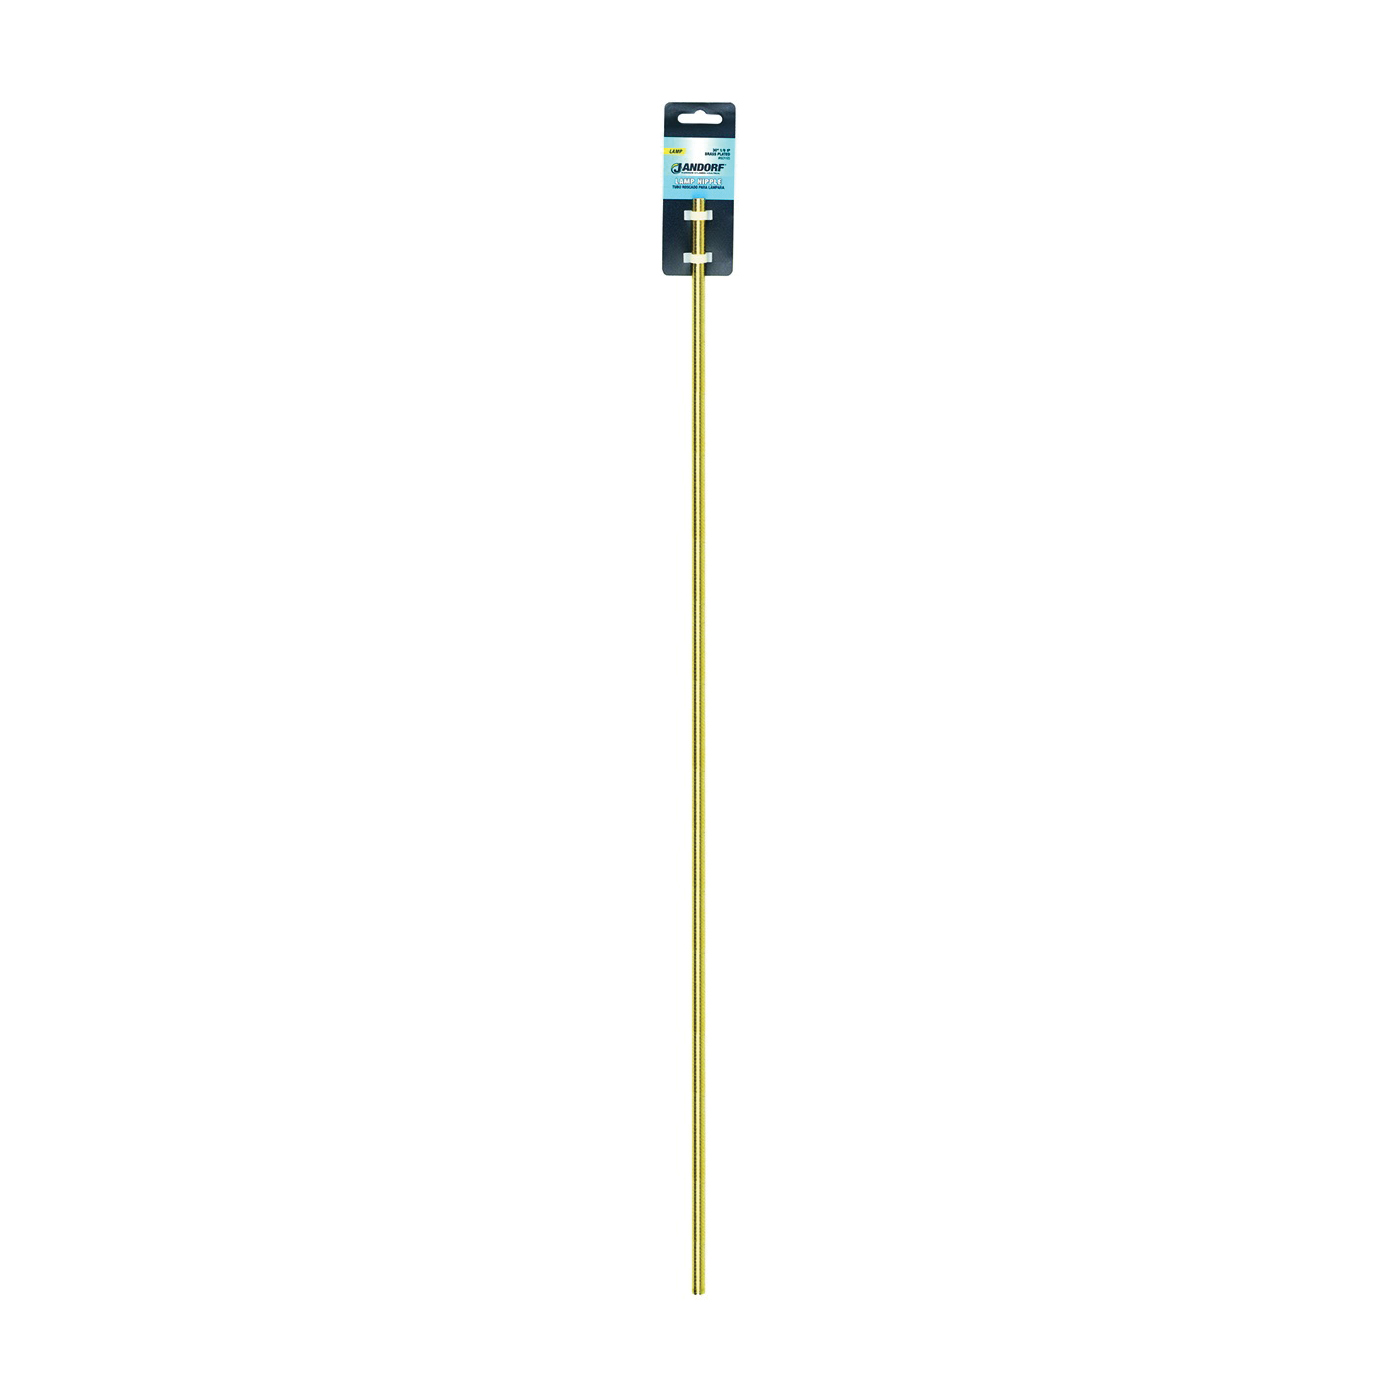 Picture of Jandorf 60165 Lamp Pipe, Brass